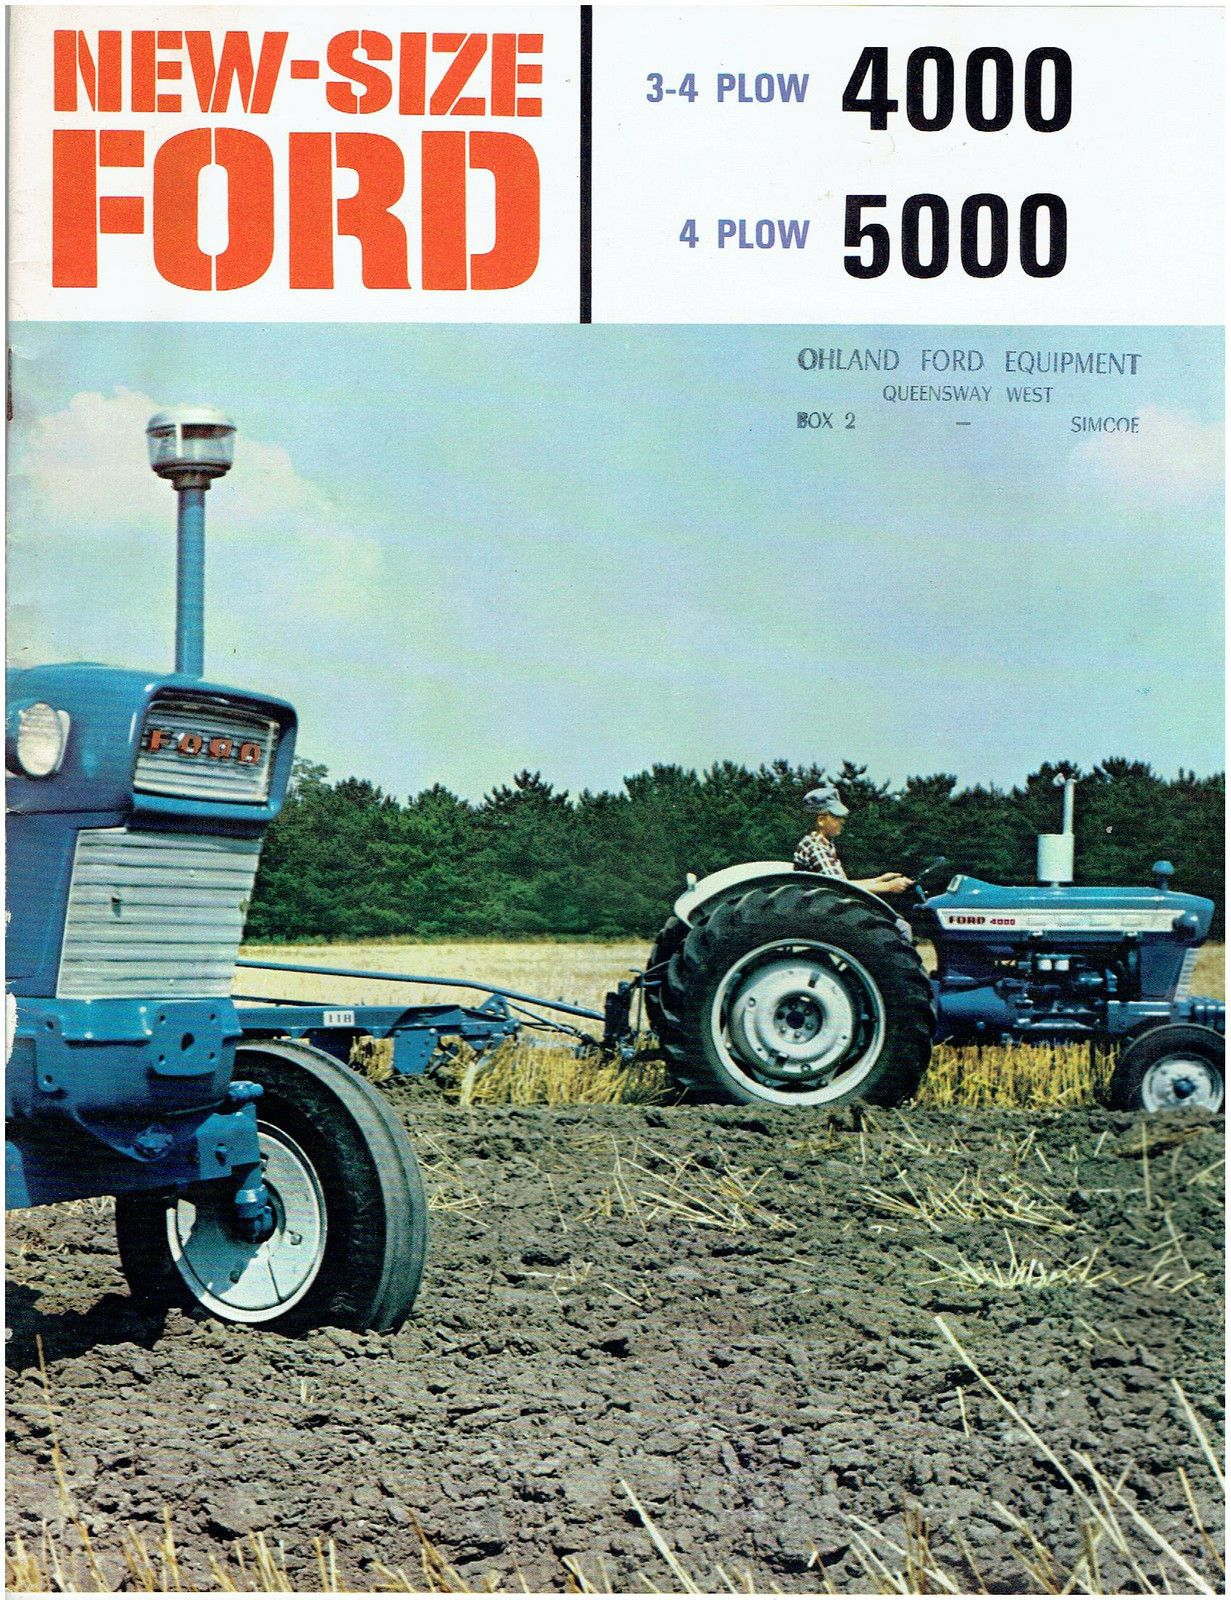 New Size Ford 4000 and 5000 Tractors Sales Brochure | eBay